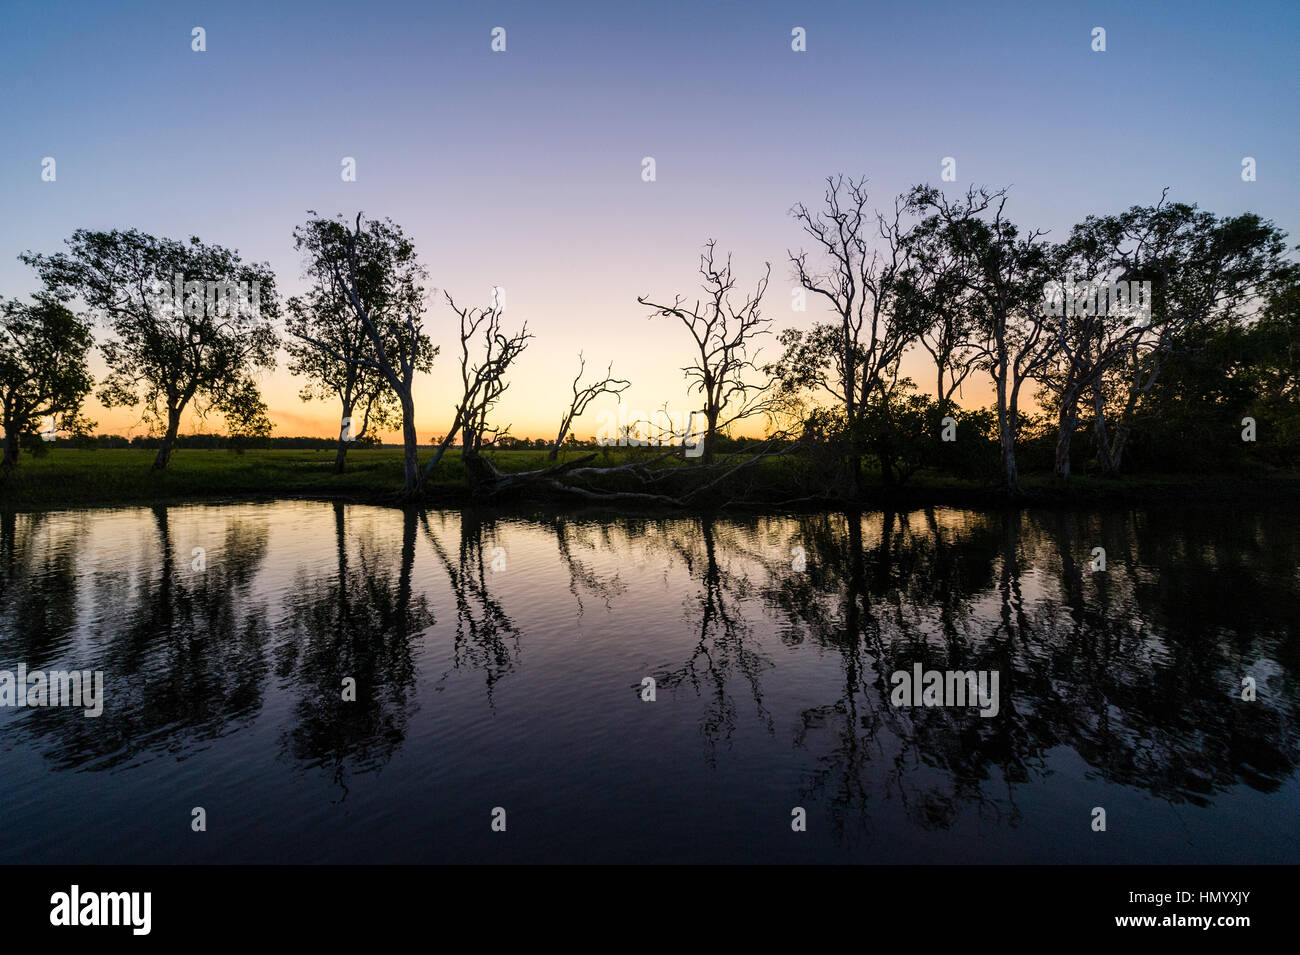 A tranquil row of trees along the shore of a wetland silhouette at sunset. - Stock Image